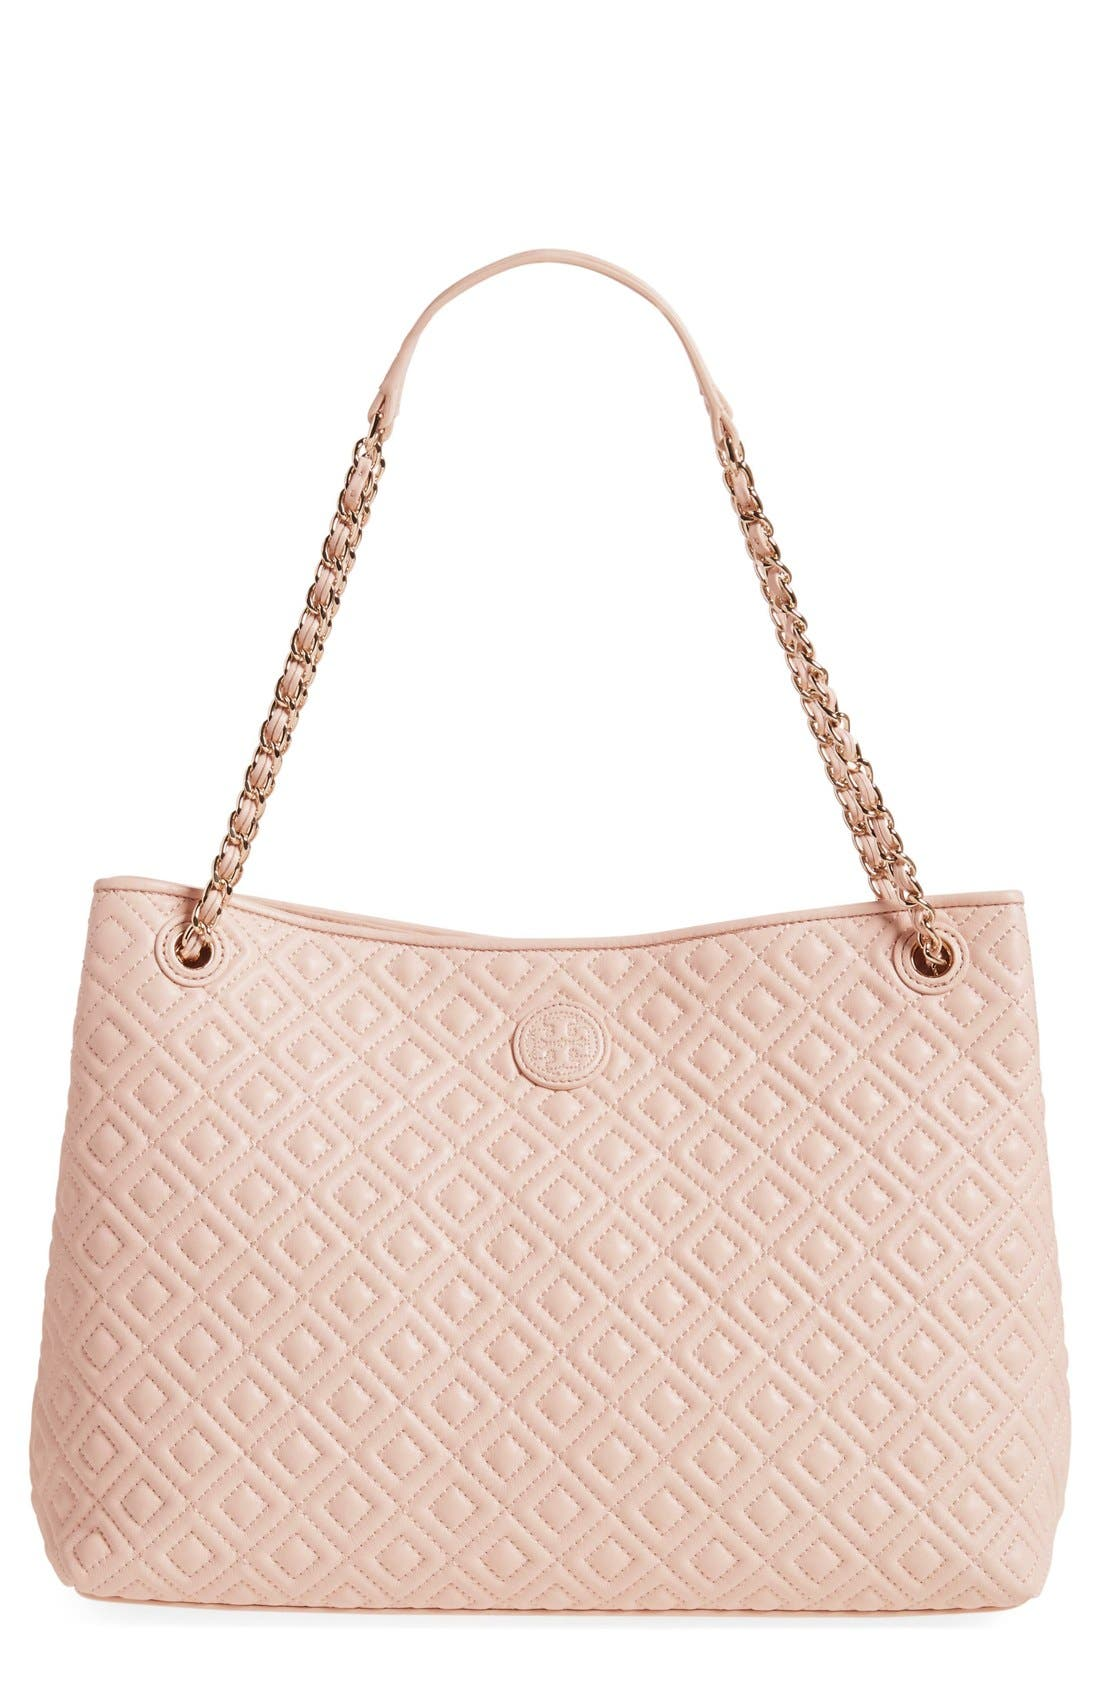 Main Image - Tory Burch 'Marion' Diamond Quilted Lambskin Leather Tote